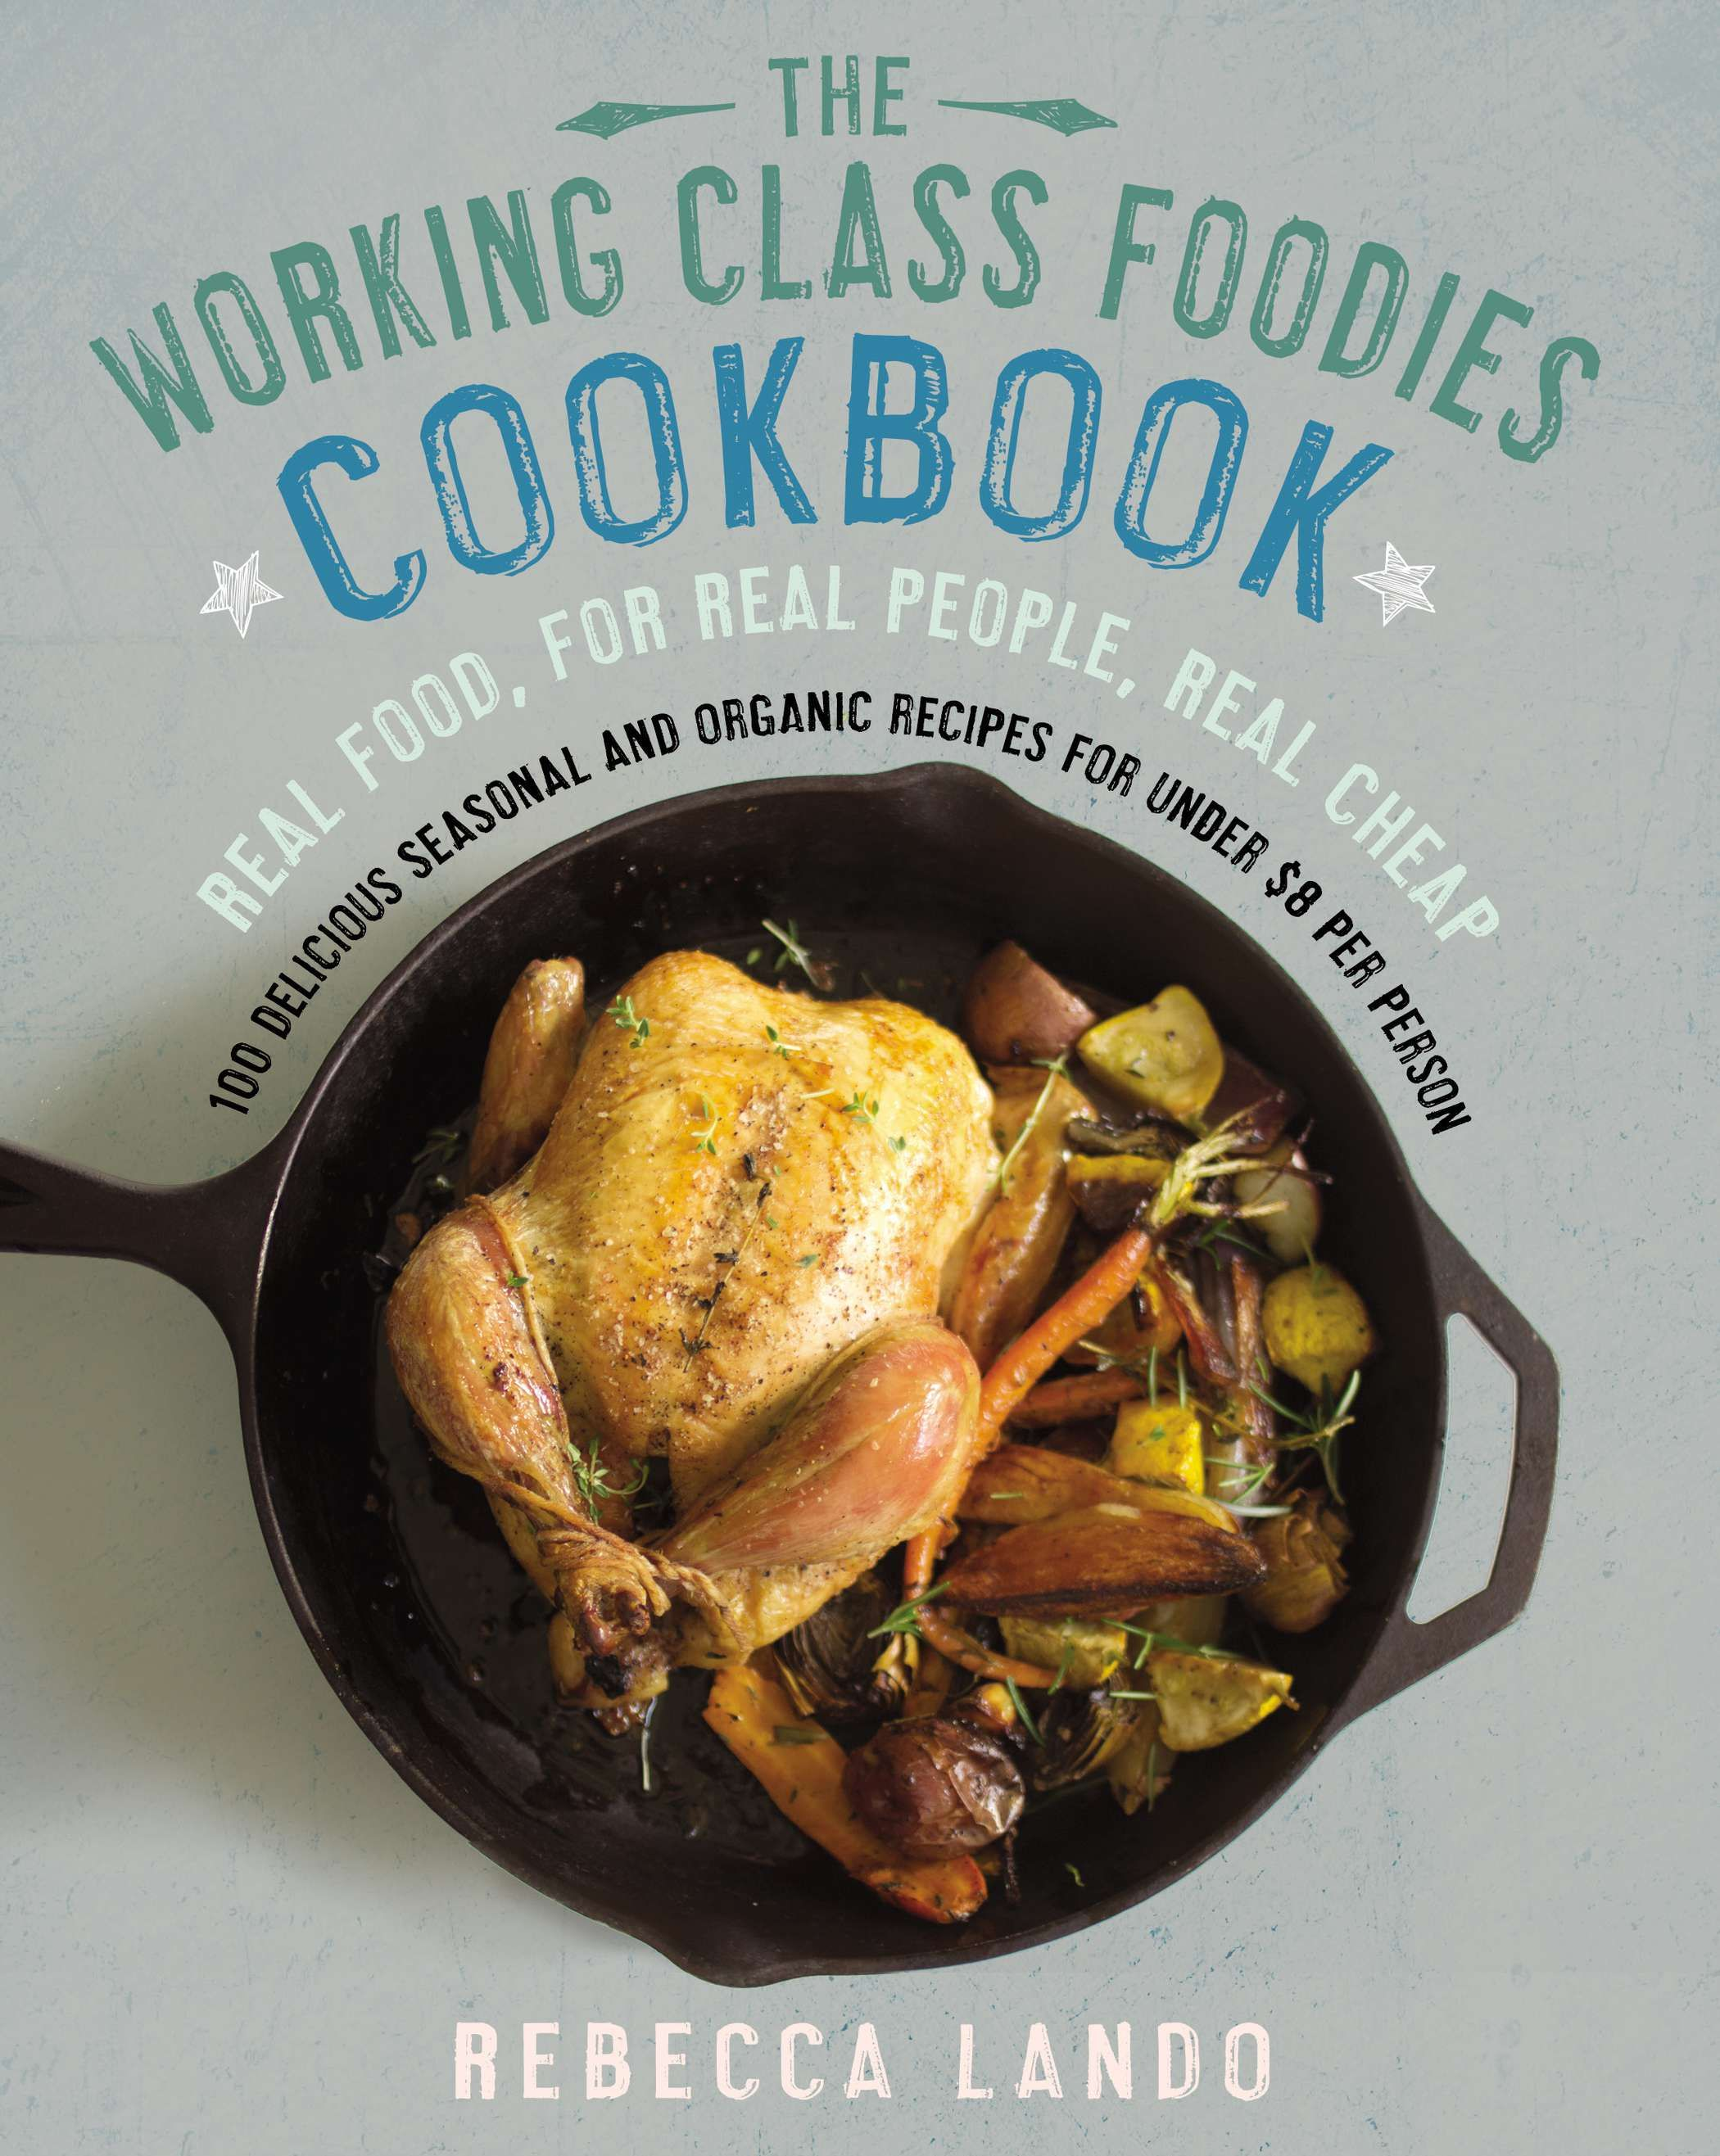 Rebecca lando a youtube celebrity and food blogger s budget rebecca lando a youtube celebrity and food blogger s budget friendly cookbook shows how real forumfinder Images